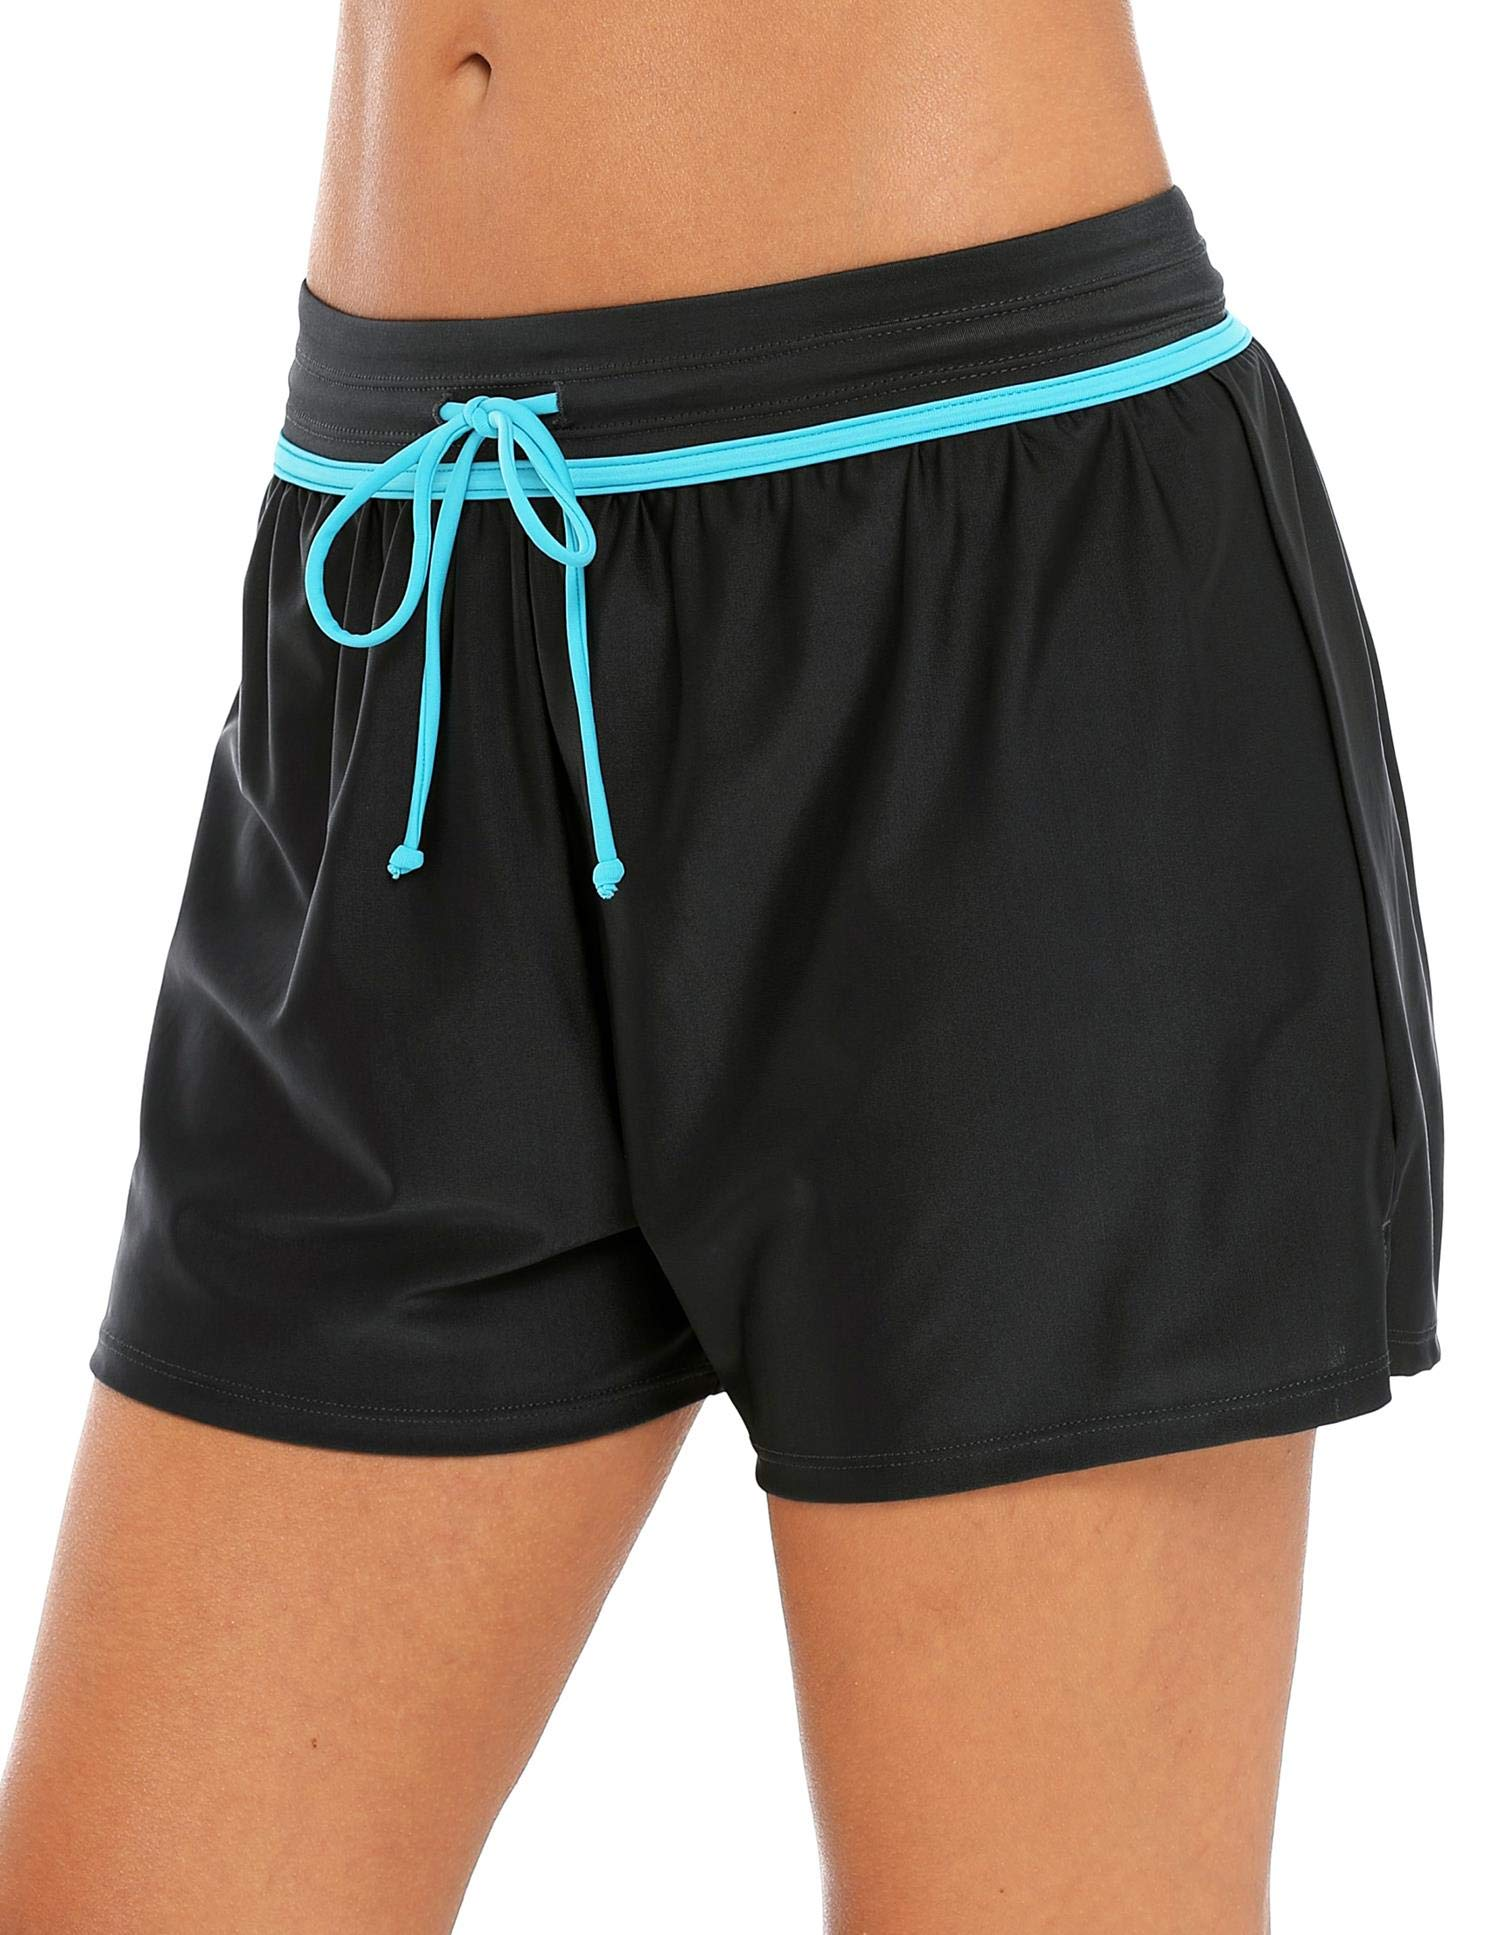 Anwell Swim Tankini Swimsuit Bottom for Women Drawstring Boardshort Aqua Medium by Anwell